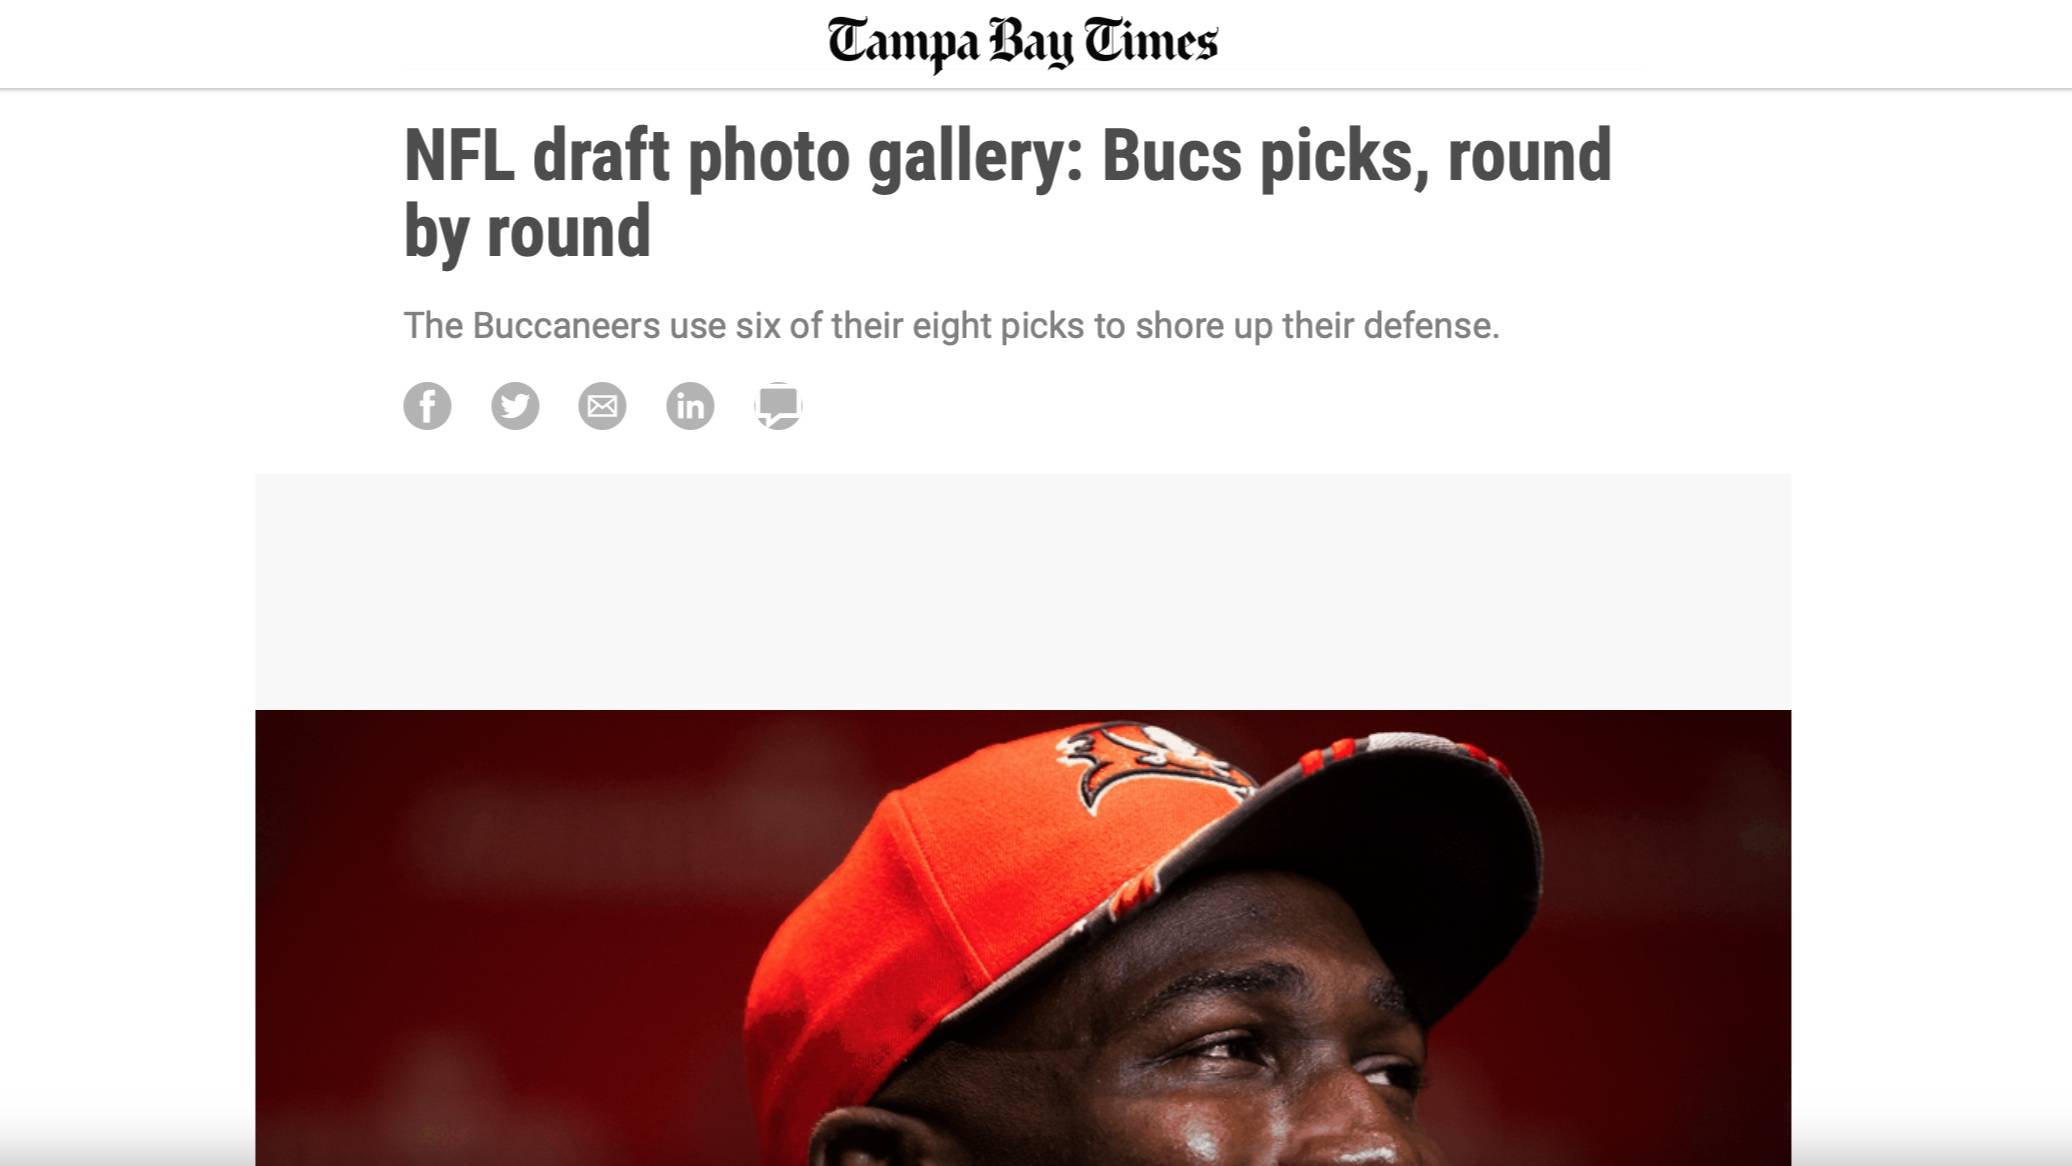 Tampa Bay Times , April 26, 2019   NFL draft photo gallery: Bucs picks, round by round